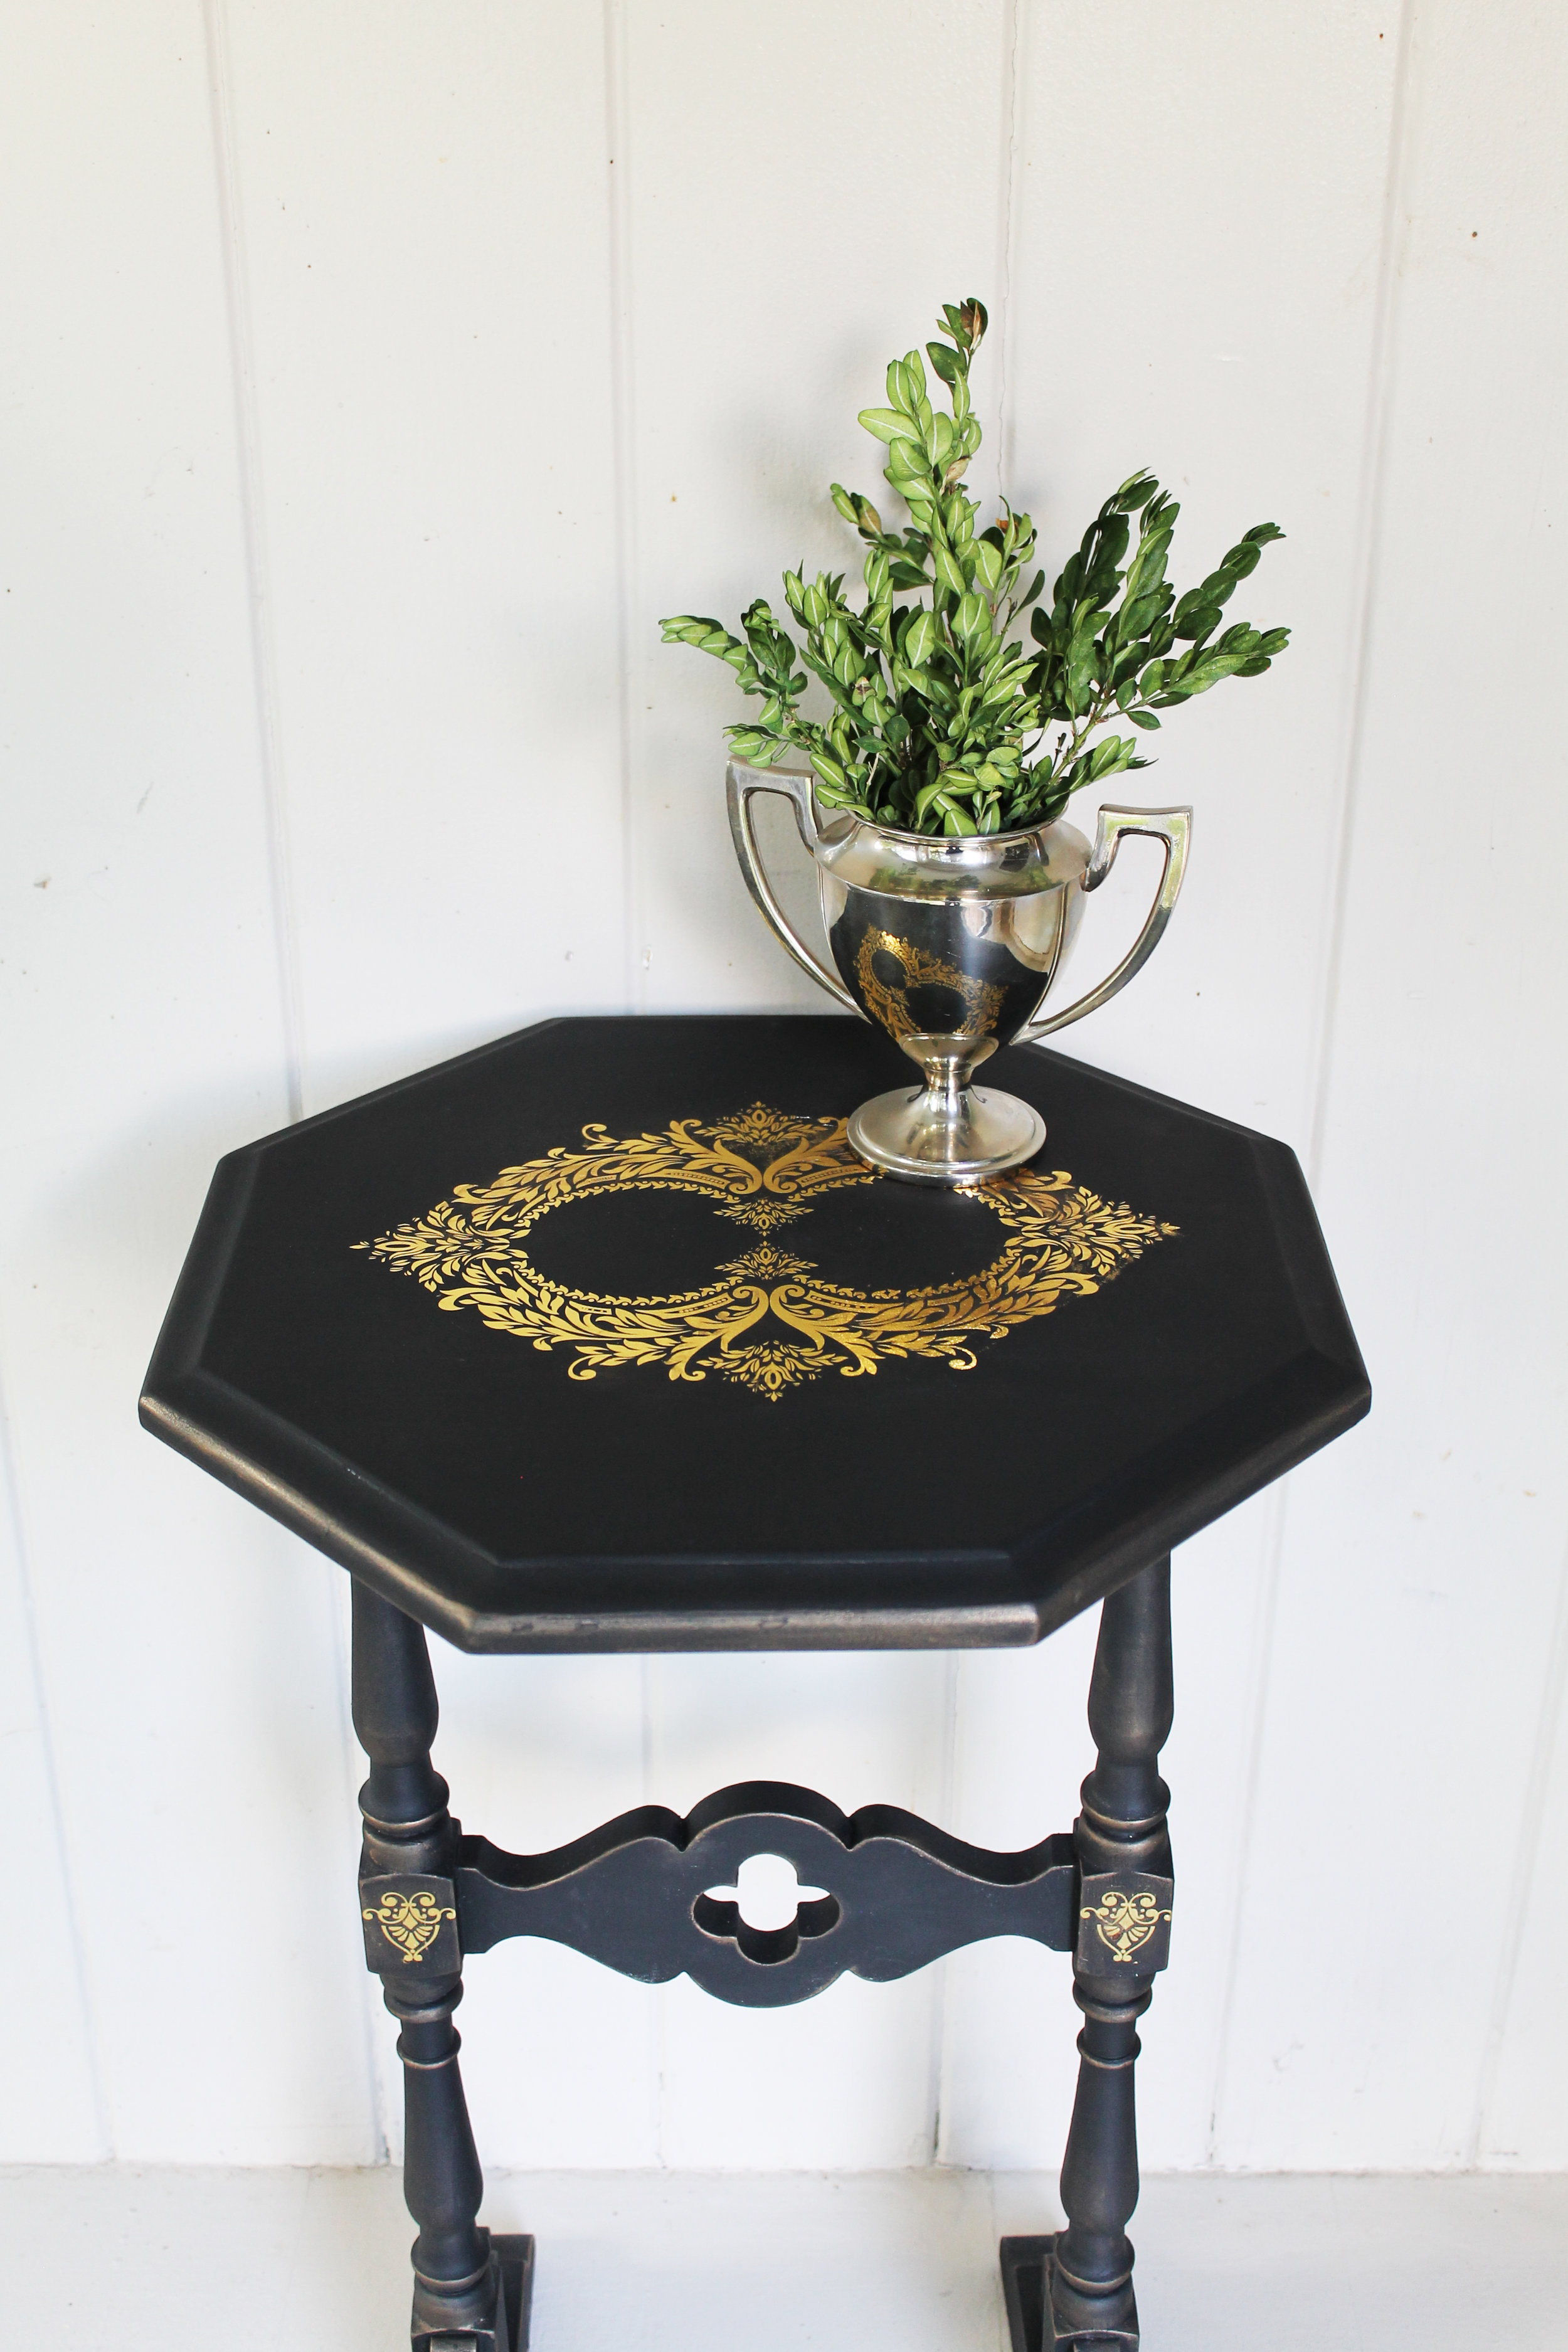 We used the Gilded Baroque Scrollwork Decor Transfer™ set and added the large design on the top. Then we added two smaller images on the legs. You can layer the transfers too. That allows you to create your own custom images or designs to fit the projects you are working on.